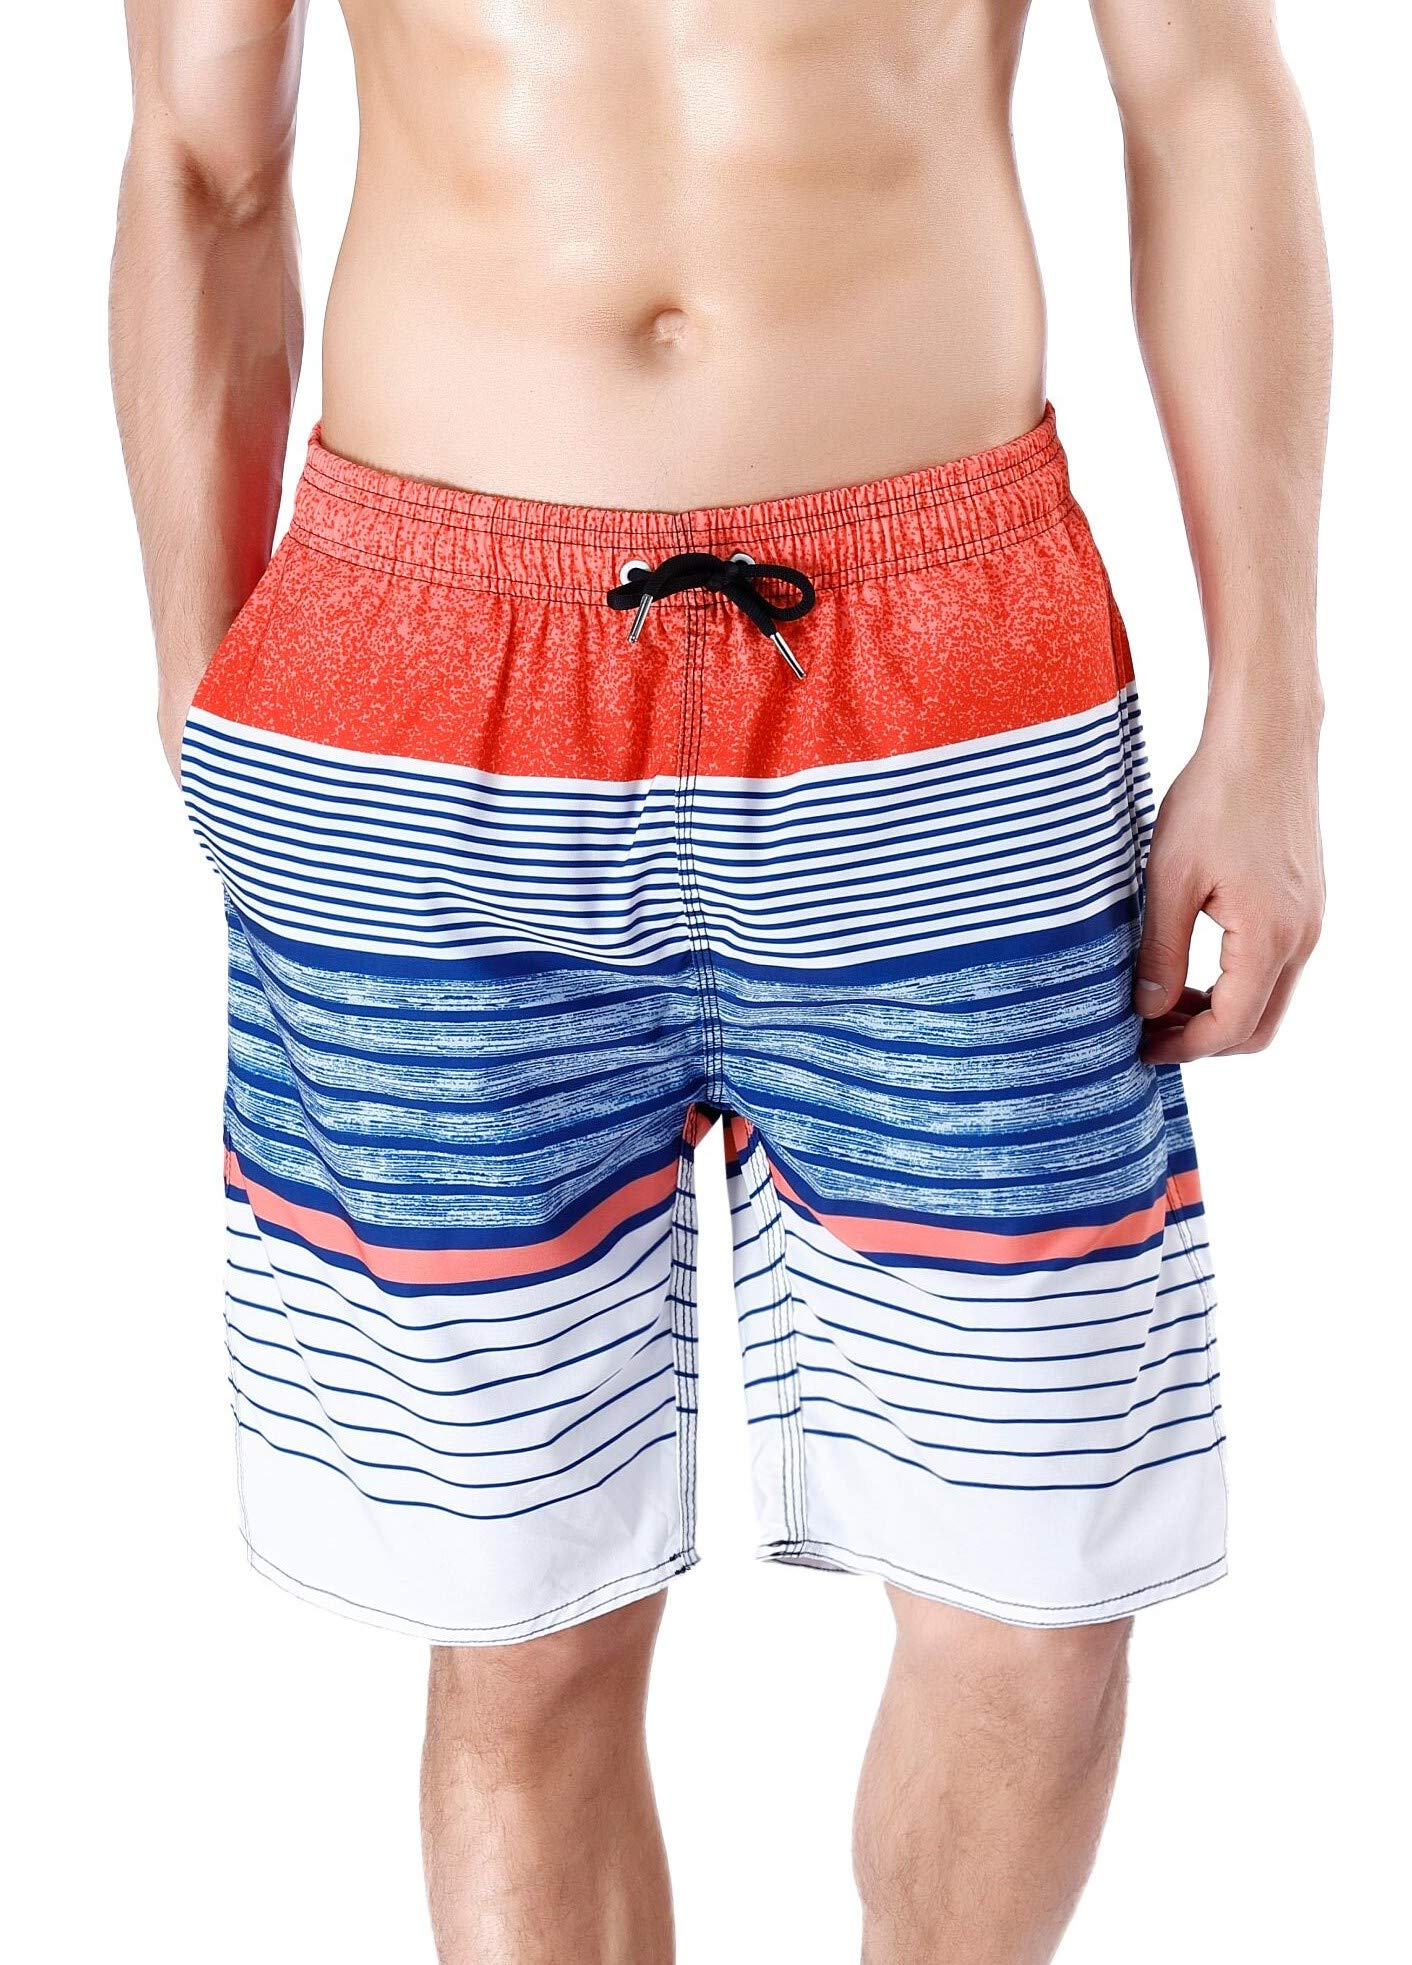 QRANSS Men's Quick Dry Swim Trunks Bathing Suit Striped Shorts with Pockets (Medium / 34-36 Inches, Pink&Blue) by QRANSS